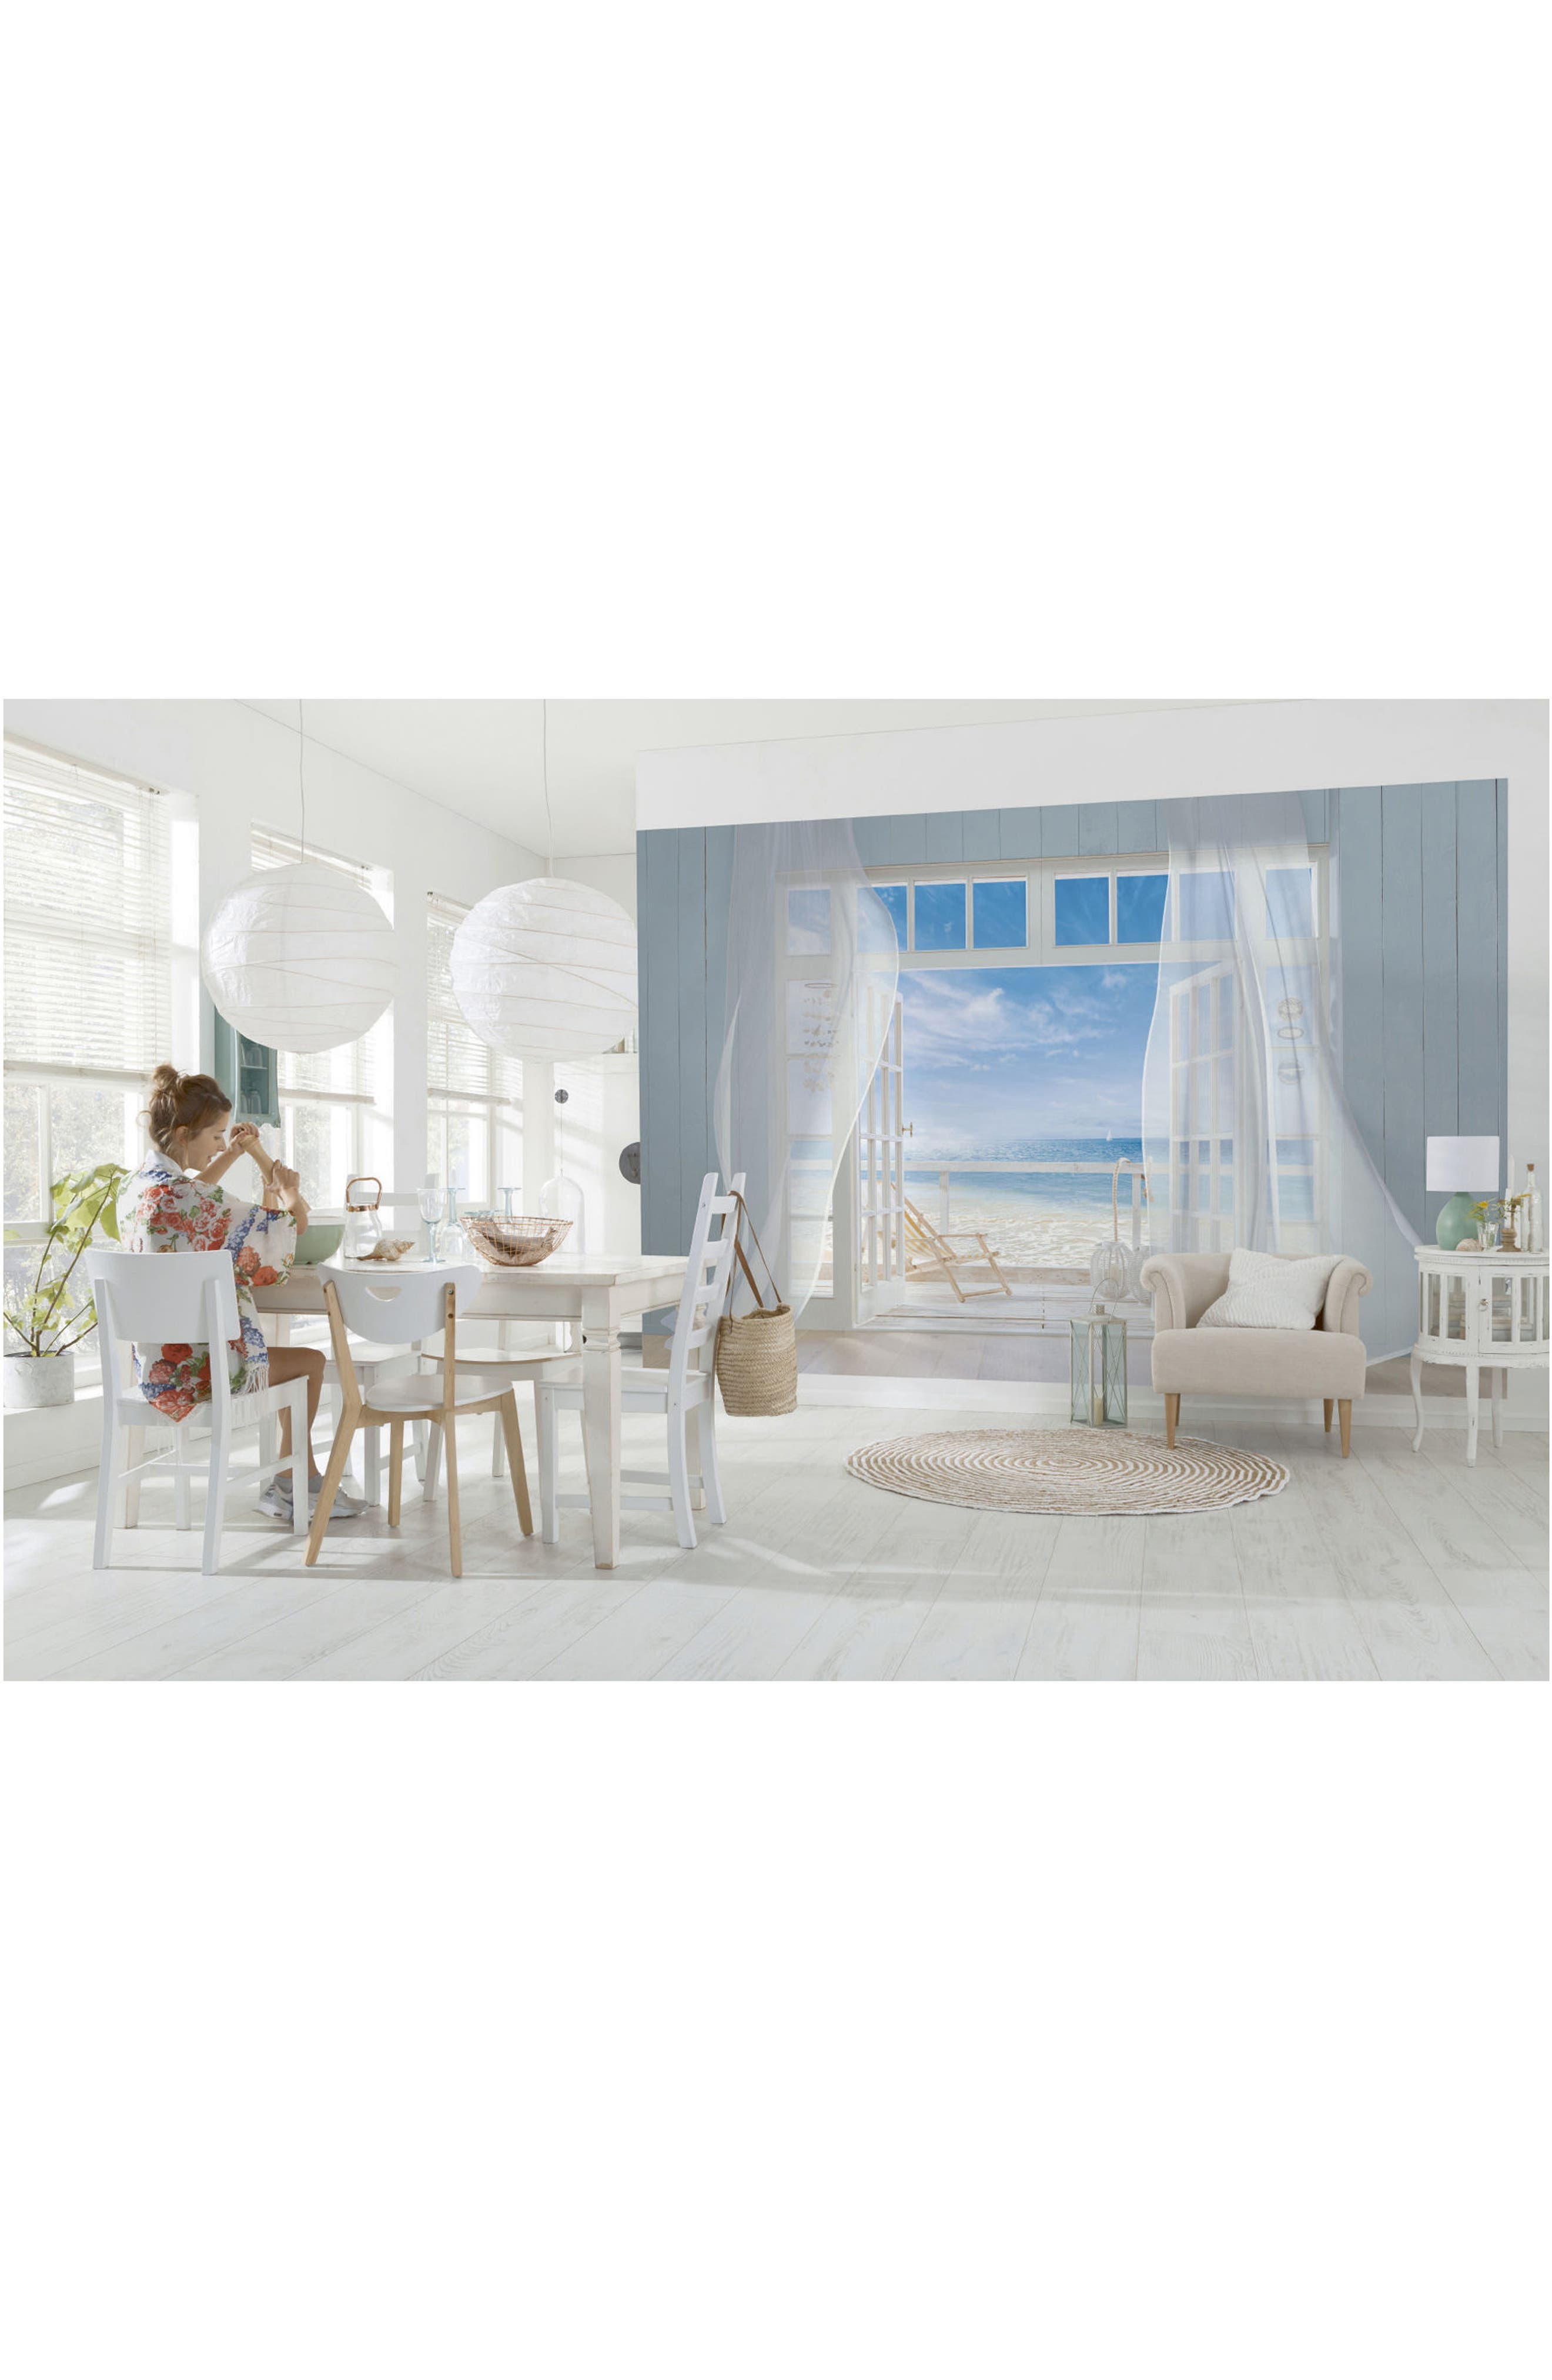 Alternate Image 2  - Wallpops Malibu 8-Panel Wall Mural